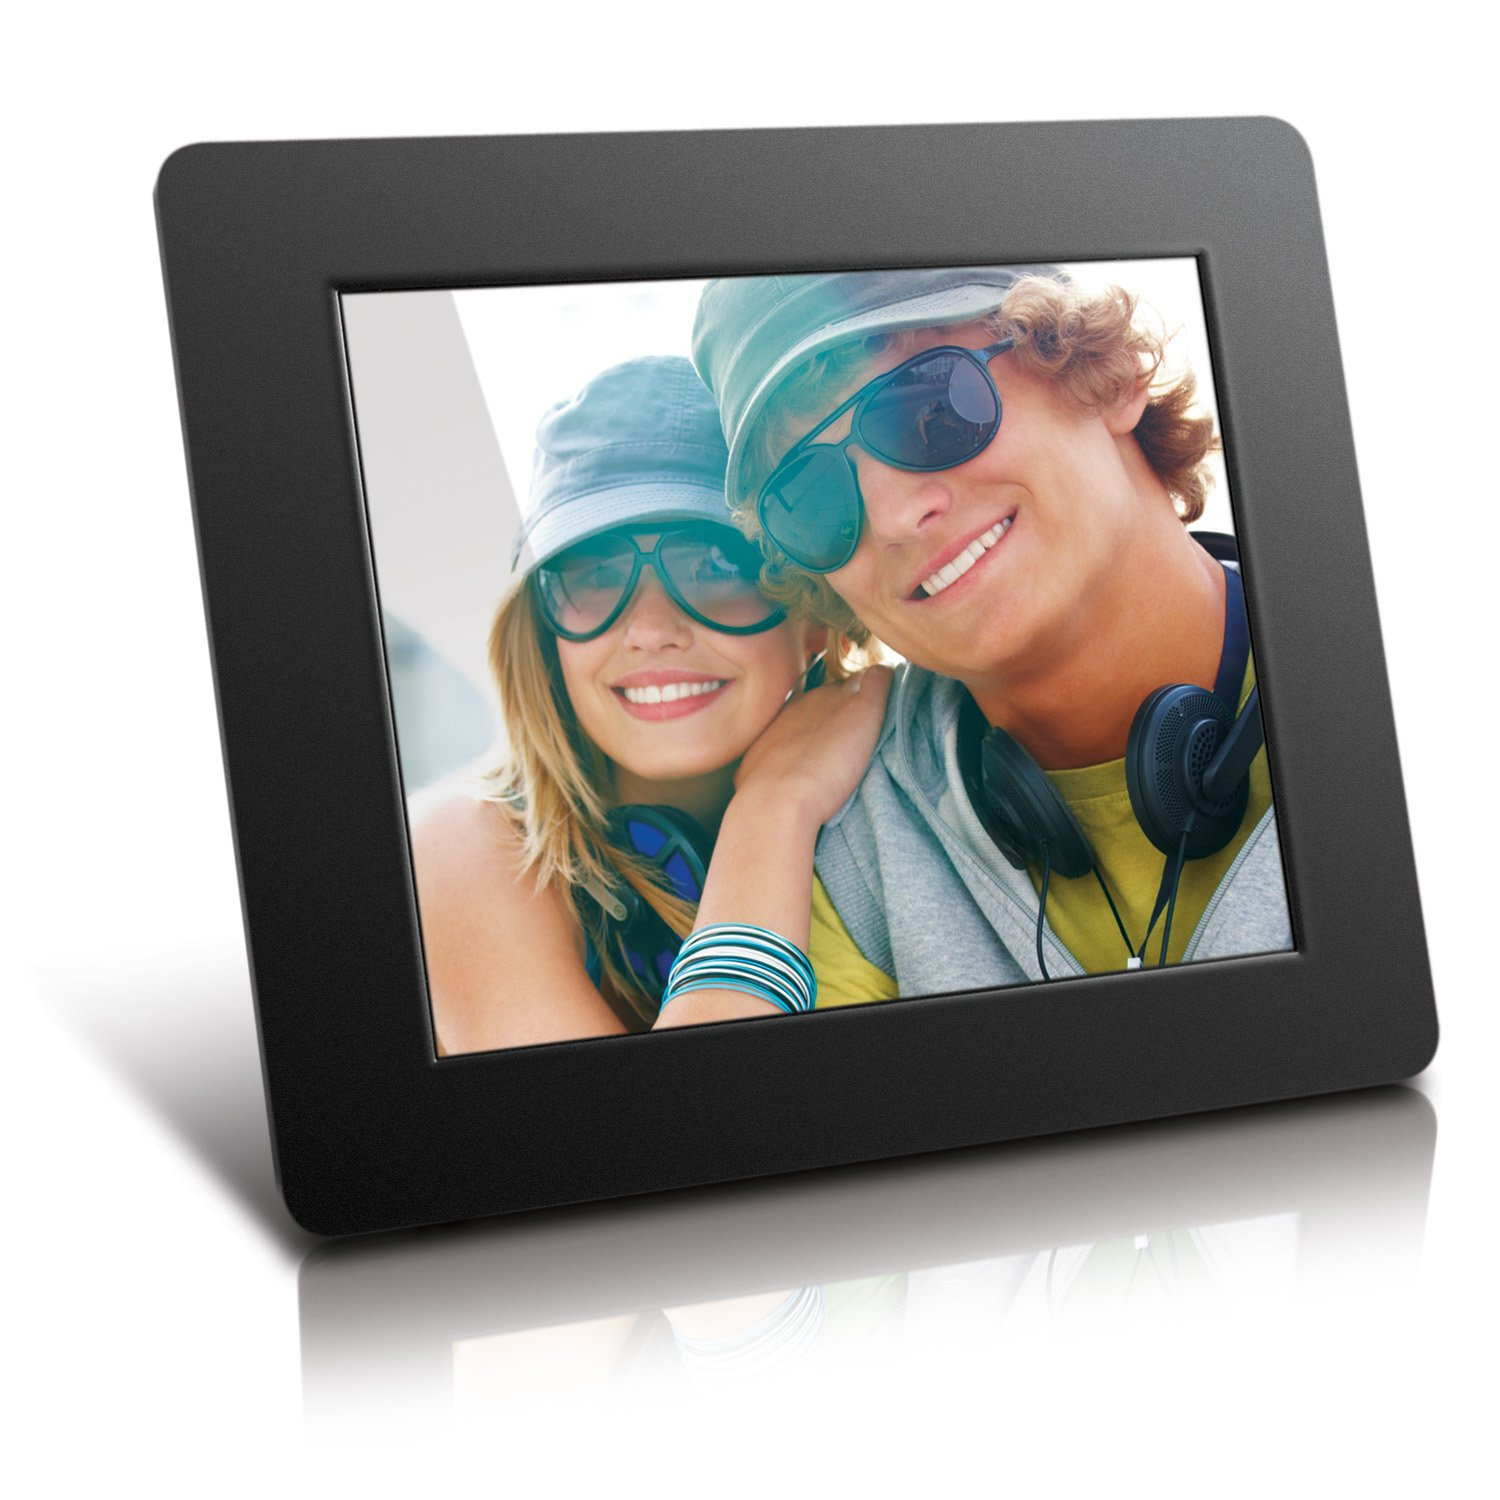 Amazon.com : Aluratek (ADPF08SF) 8 Inch Digital Photo Frame - Black ...